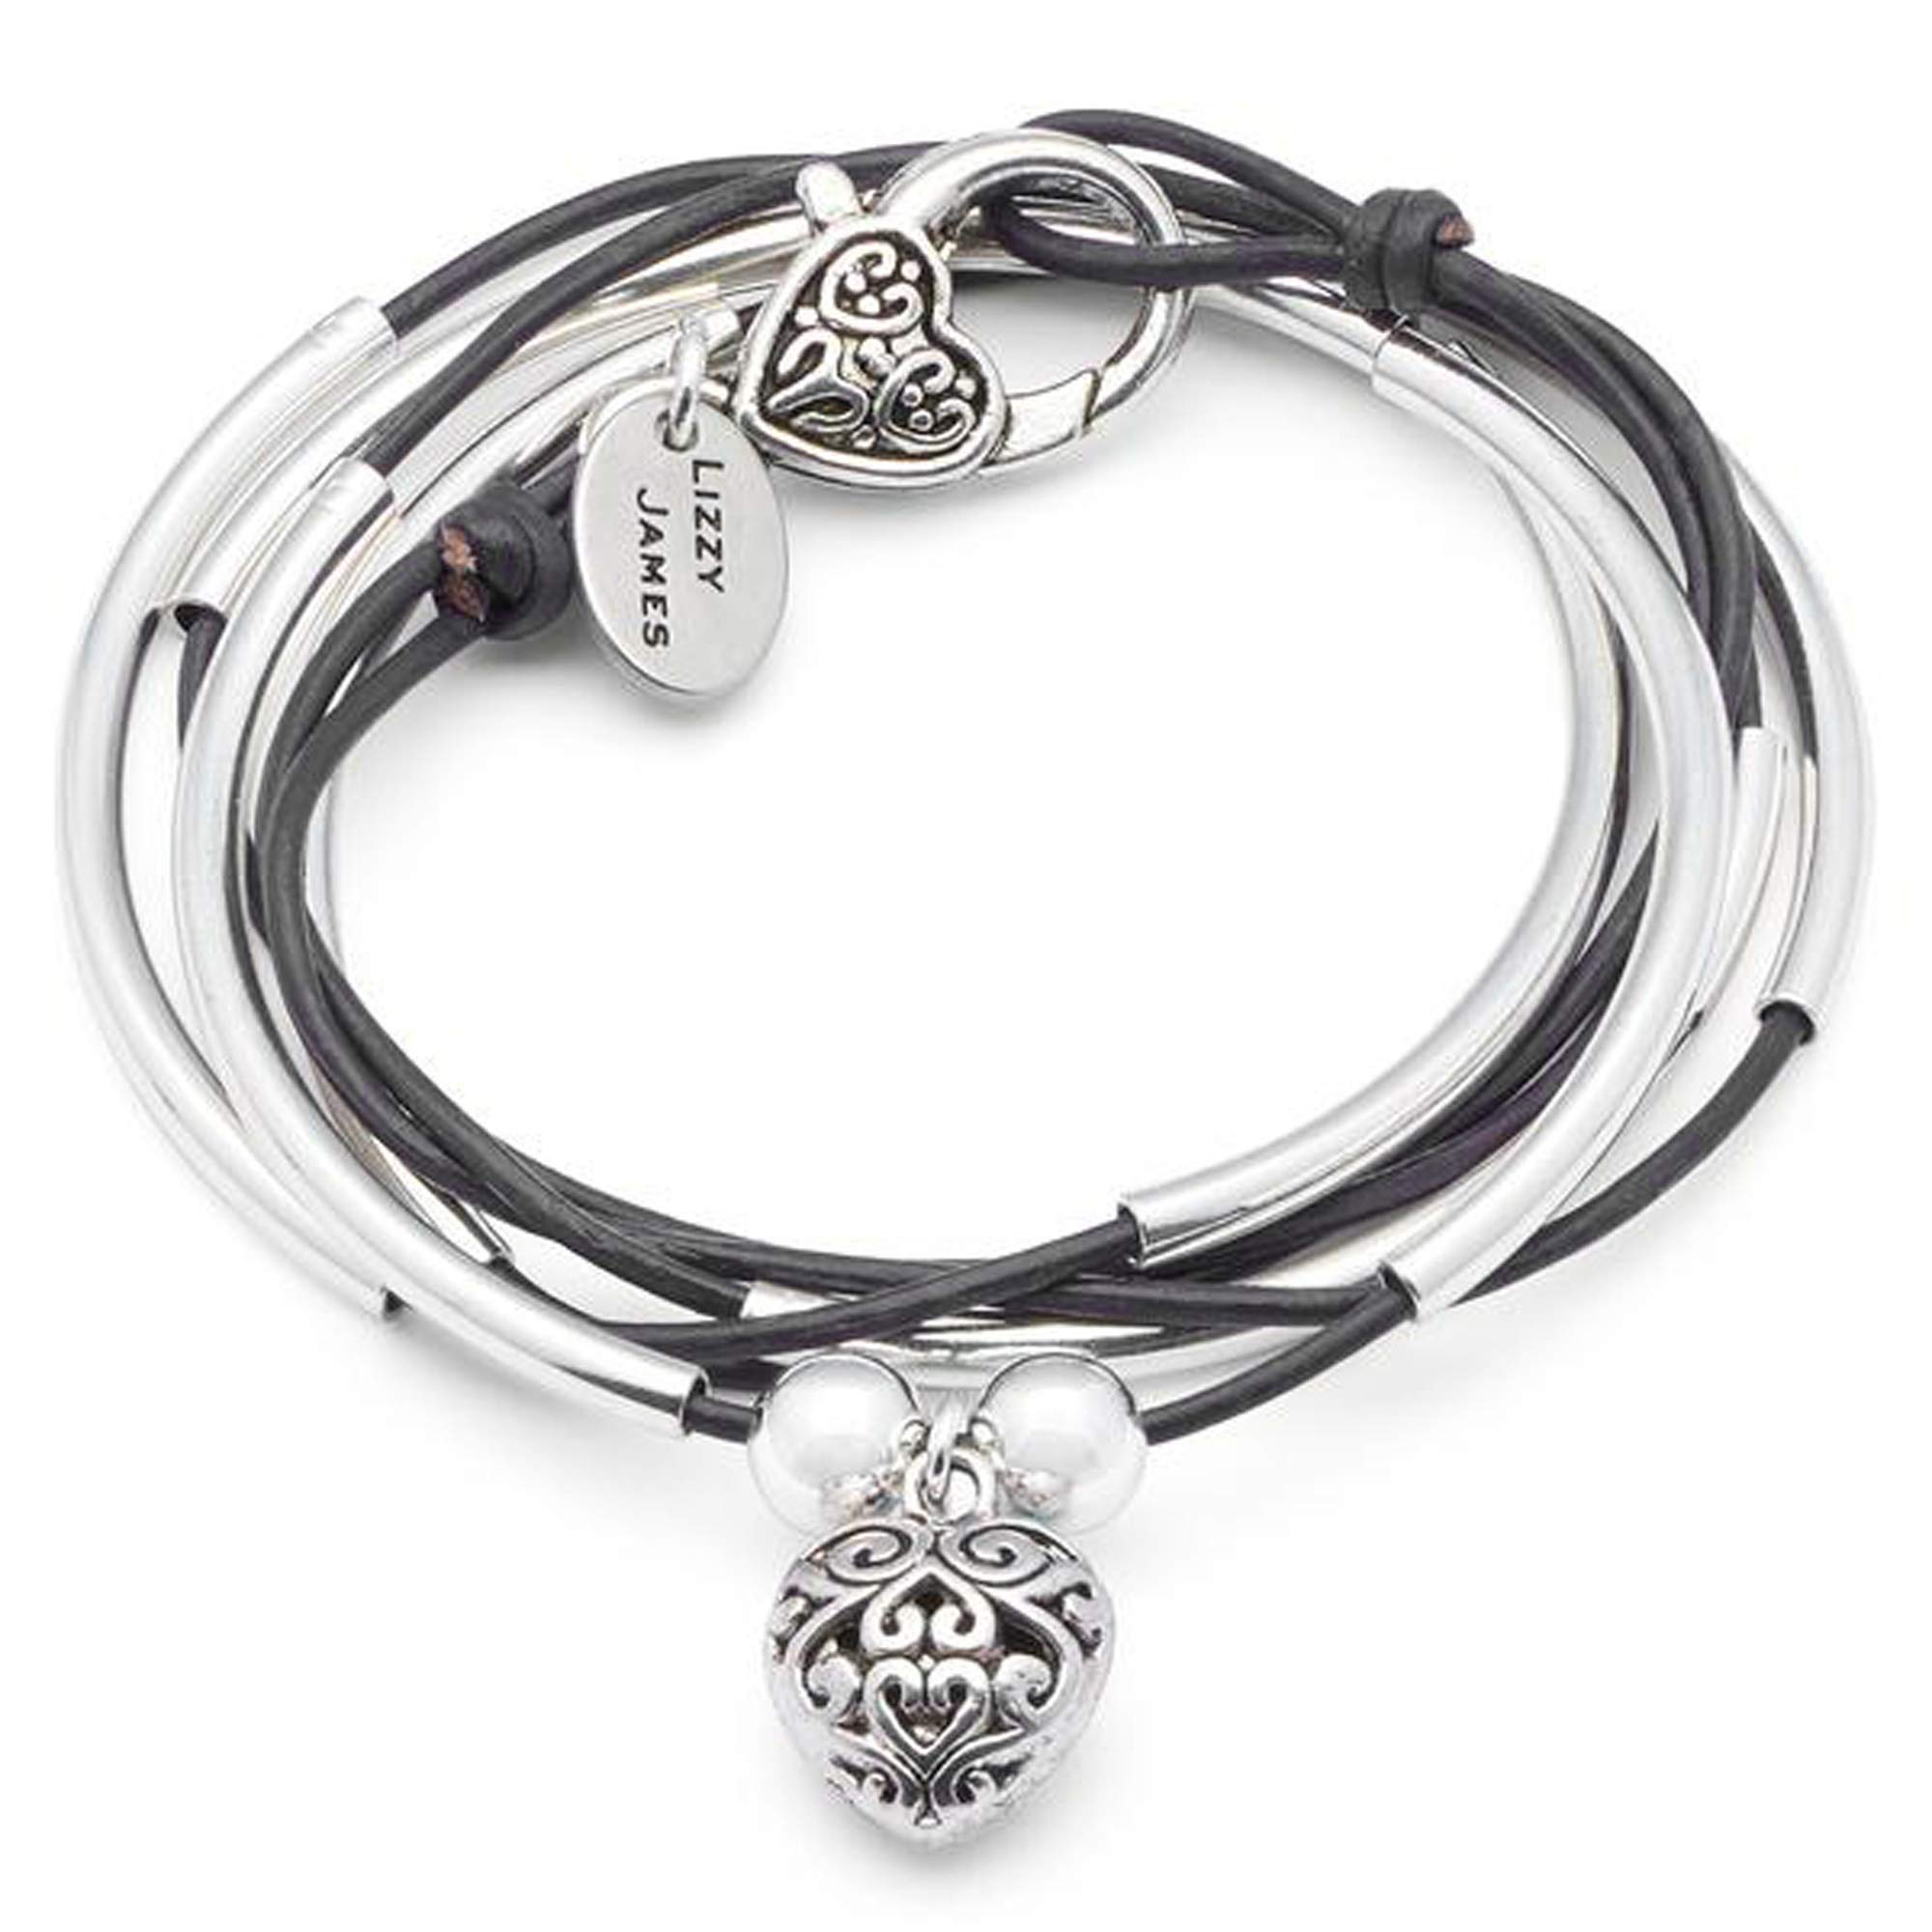 Lizzy James Girlfriend Silver Charm Bracelet Necklace w Puffed Heart Charm in Natural Black Leather (Medium) by Lizzy James